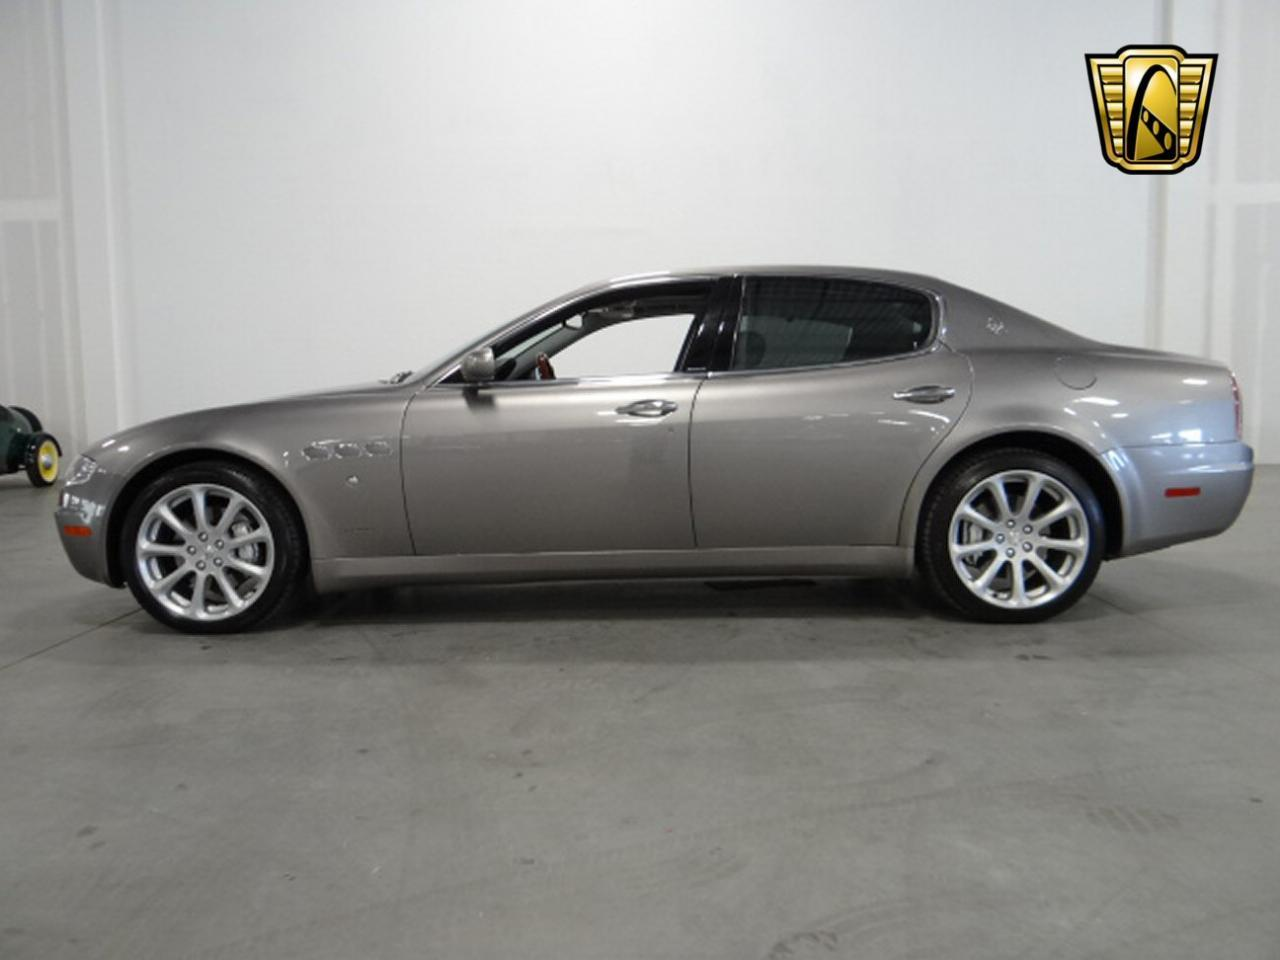 Large Picture of '07 Maserati Quattroporte located in Georgia Offered by Gateway Classic Cars - Atlanta - KF6R